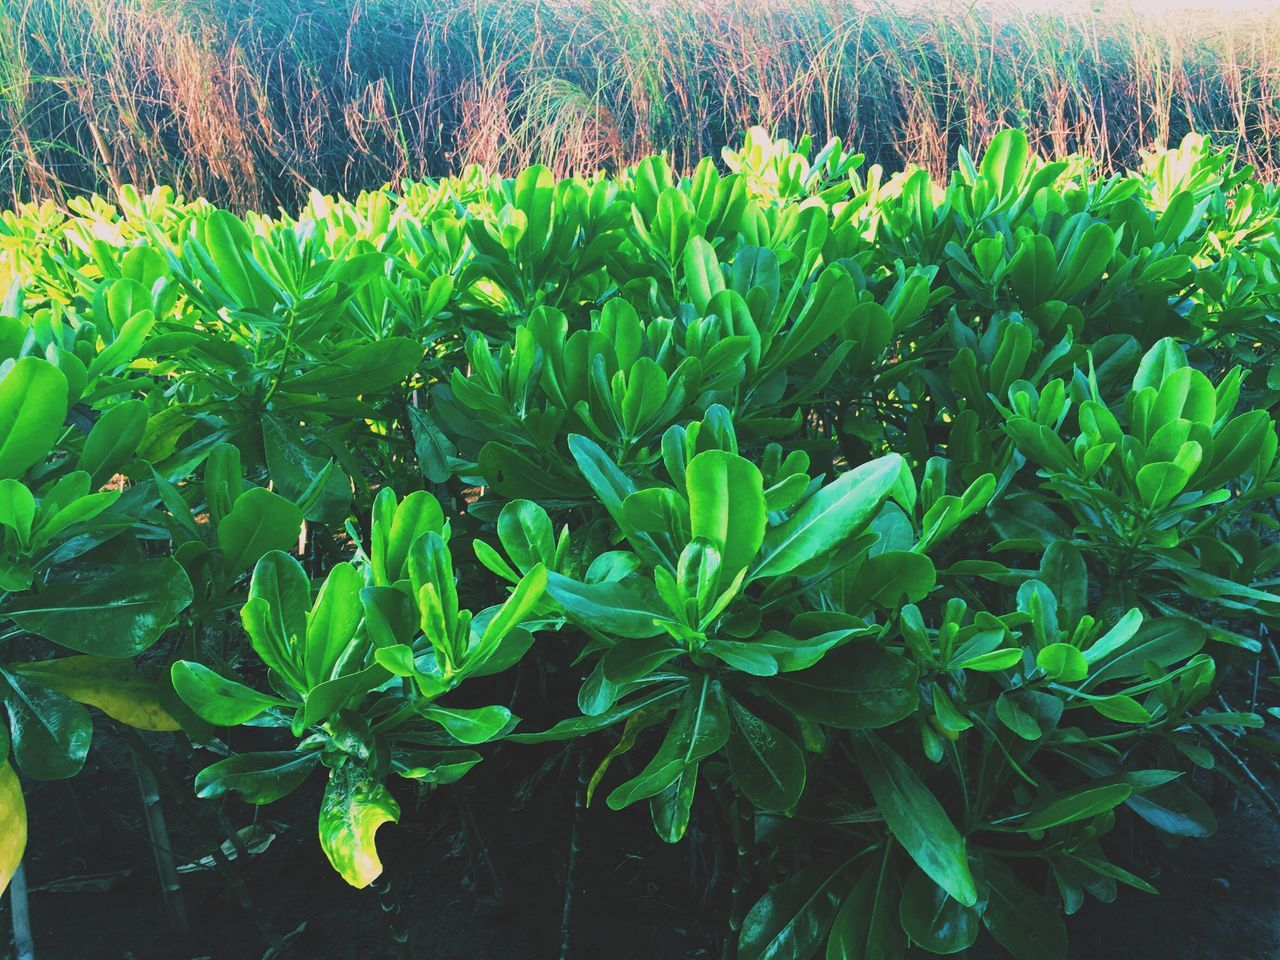 Green Plants Nice Atmosphere Beautiful Surroundings Relaxing VSCO Vscocam Vscogood Showcase March Enjoying Life Vietnam Resort Garden